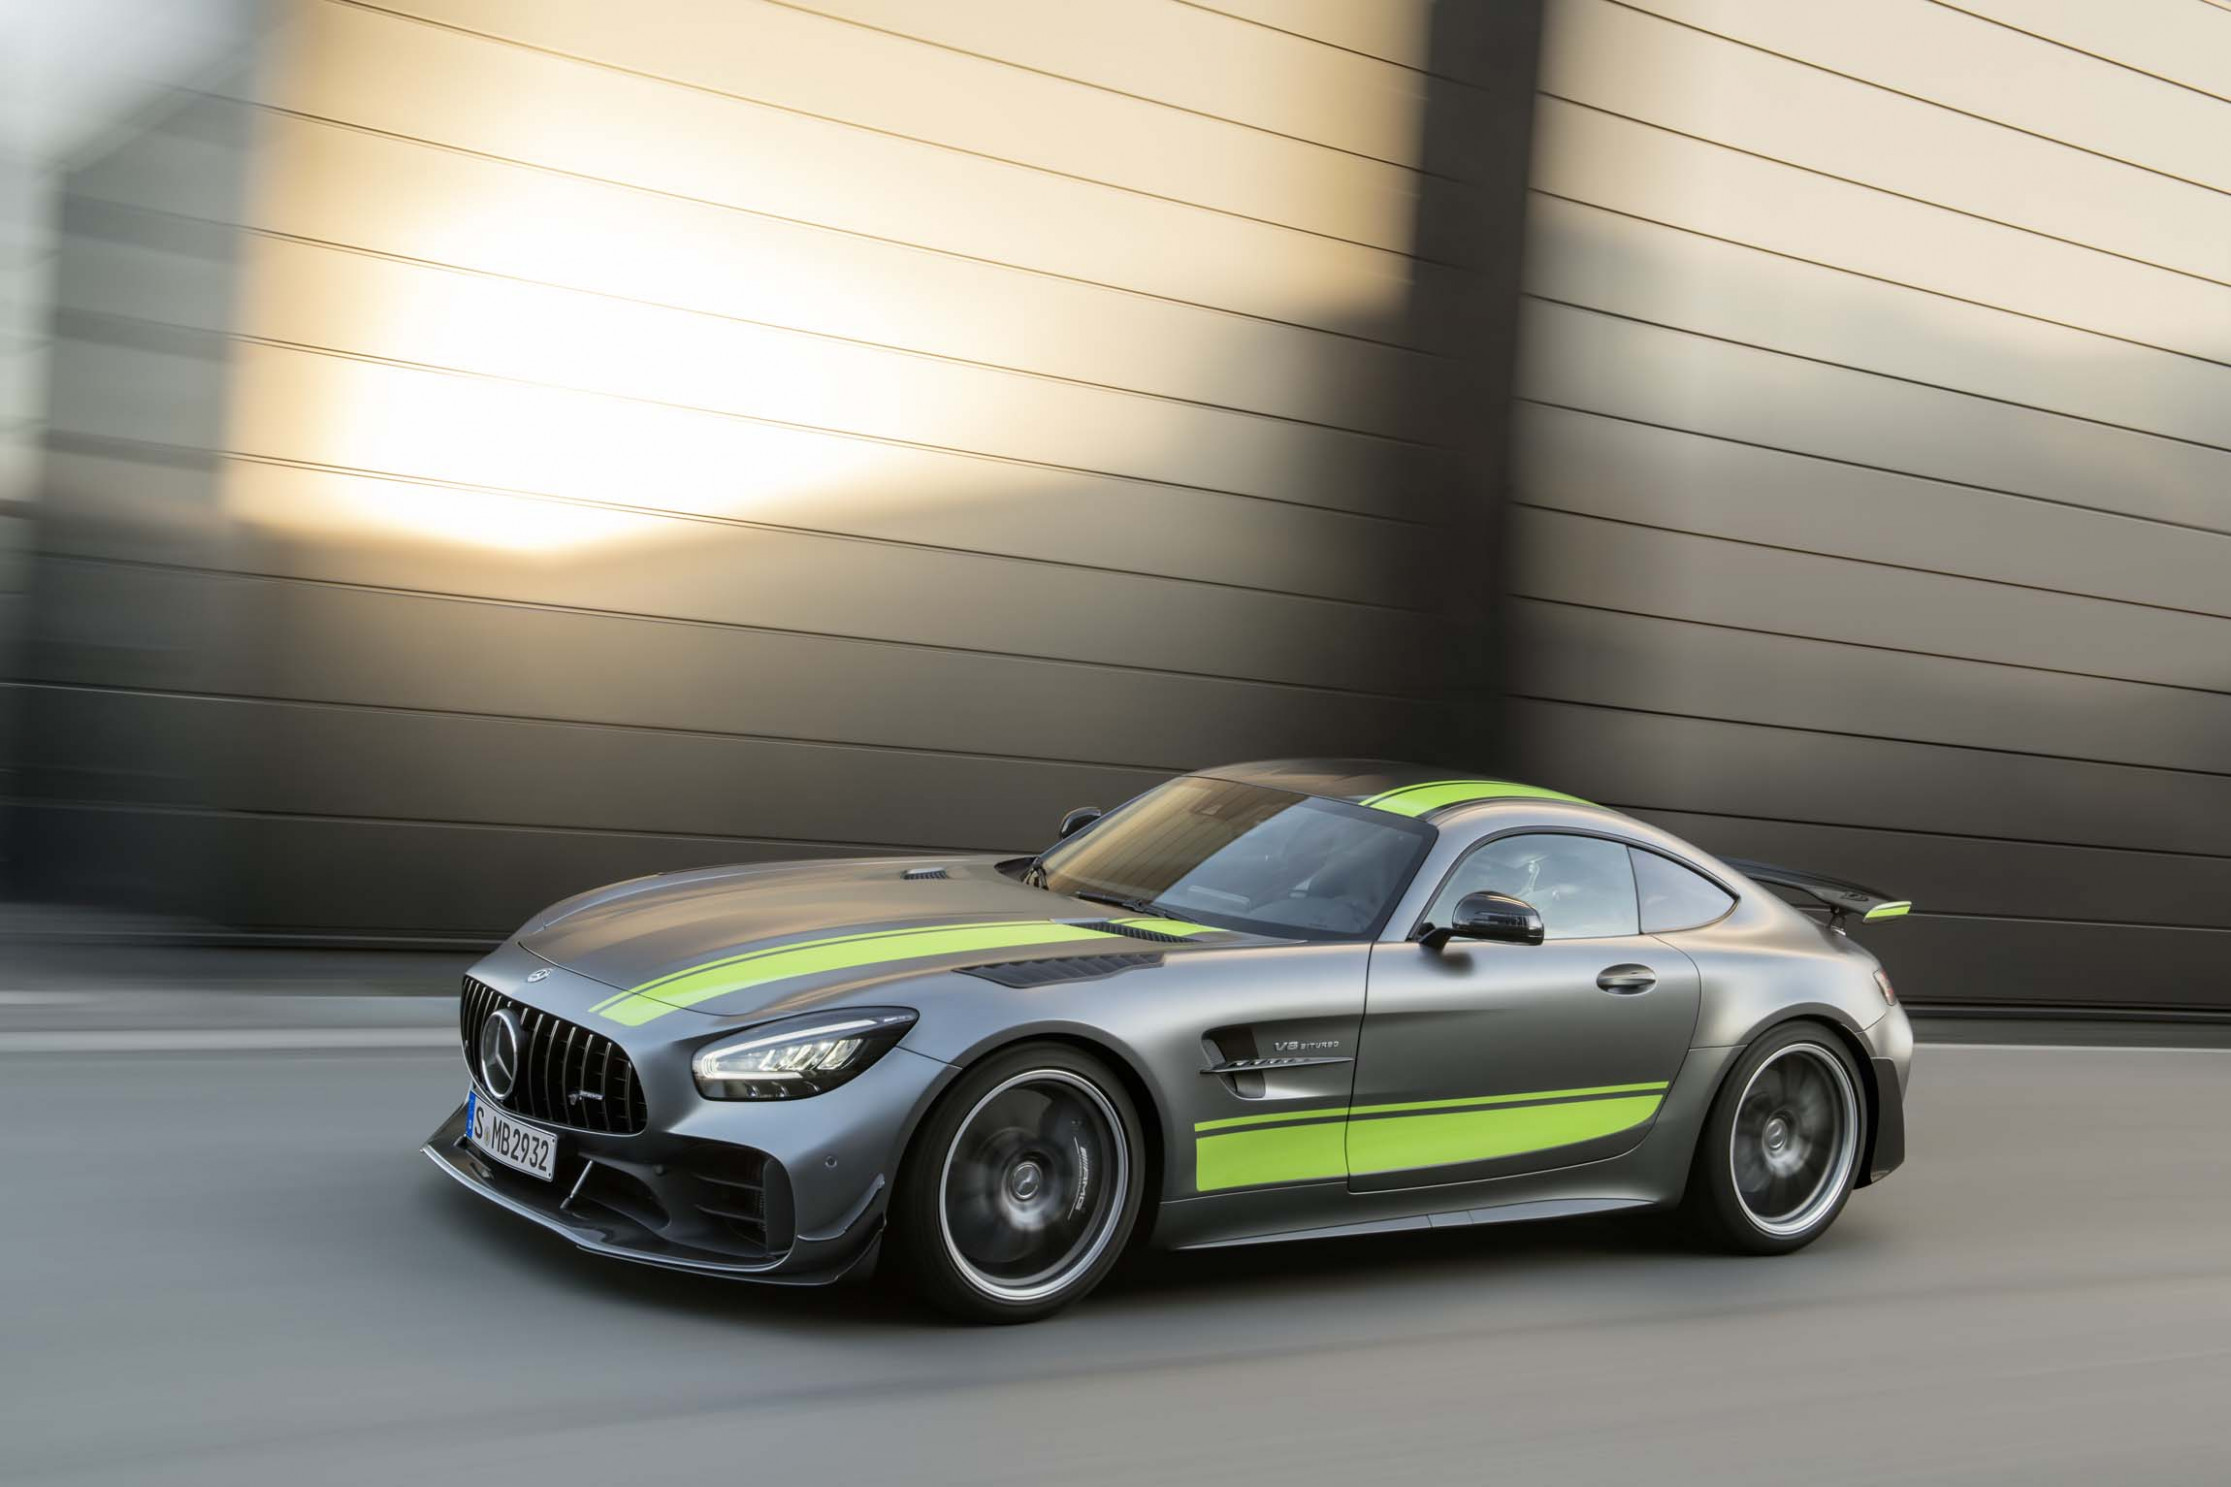 8 Mercedes-AMG GT R Pro priced from $8,8